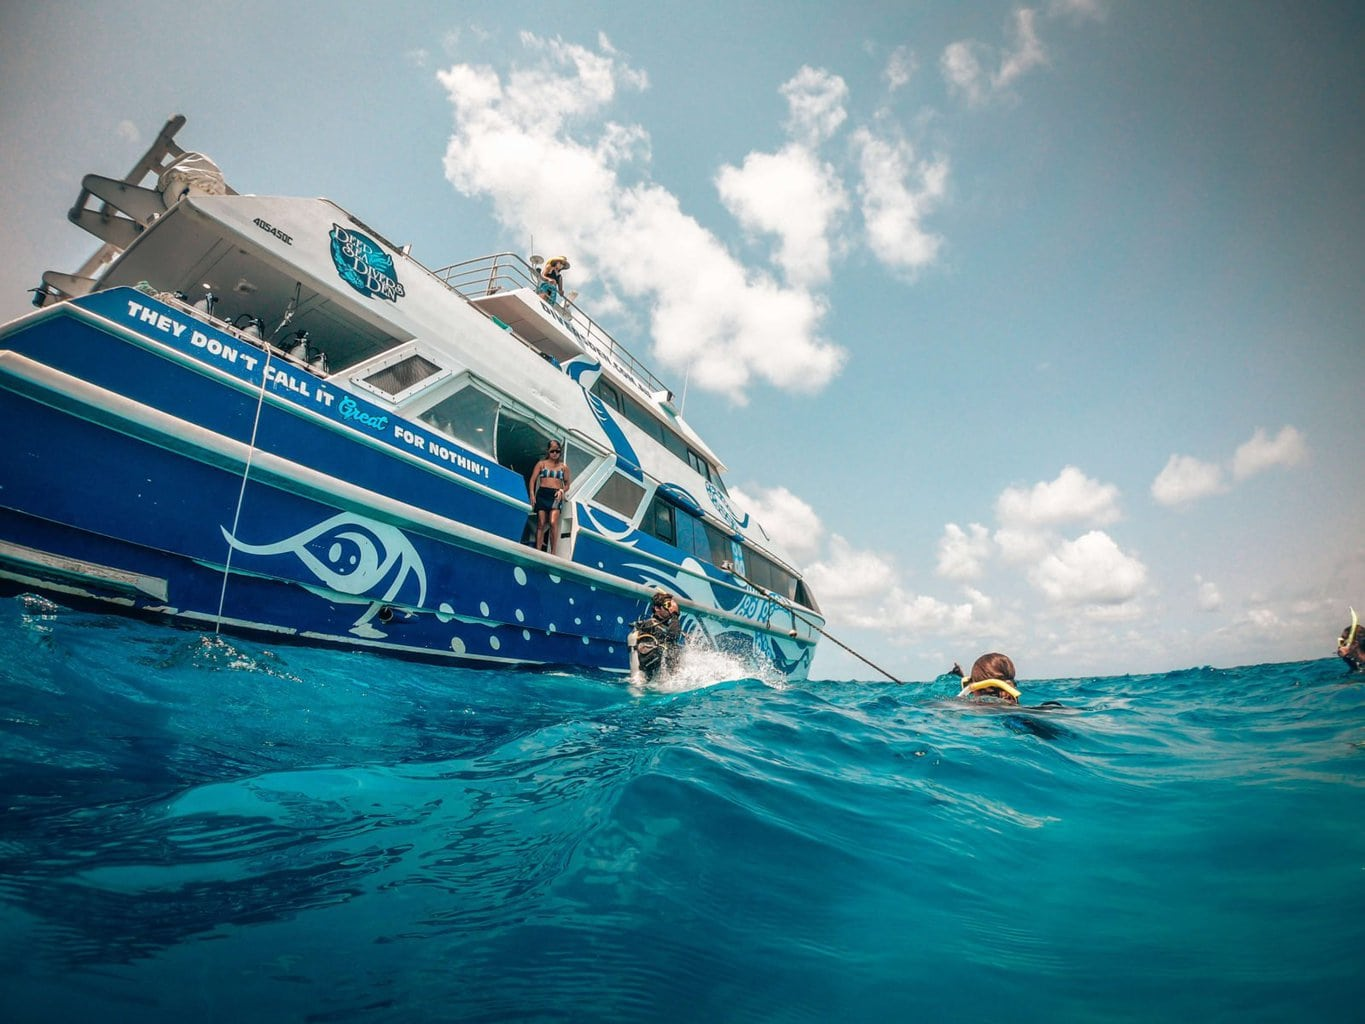 The Divers Den Reef Quest boat